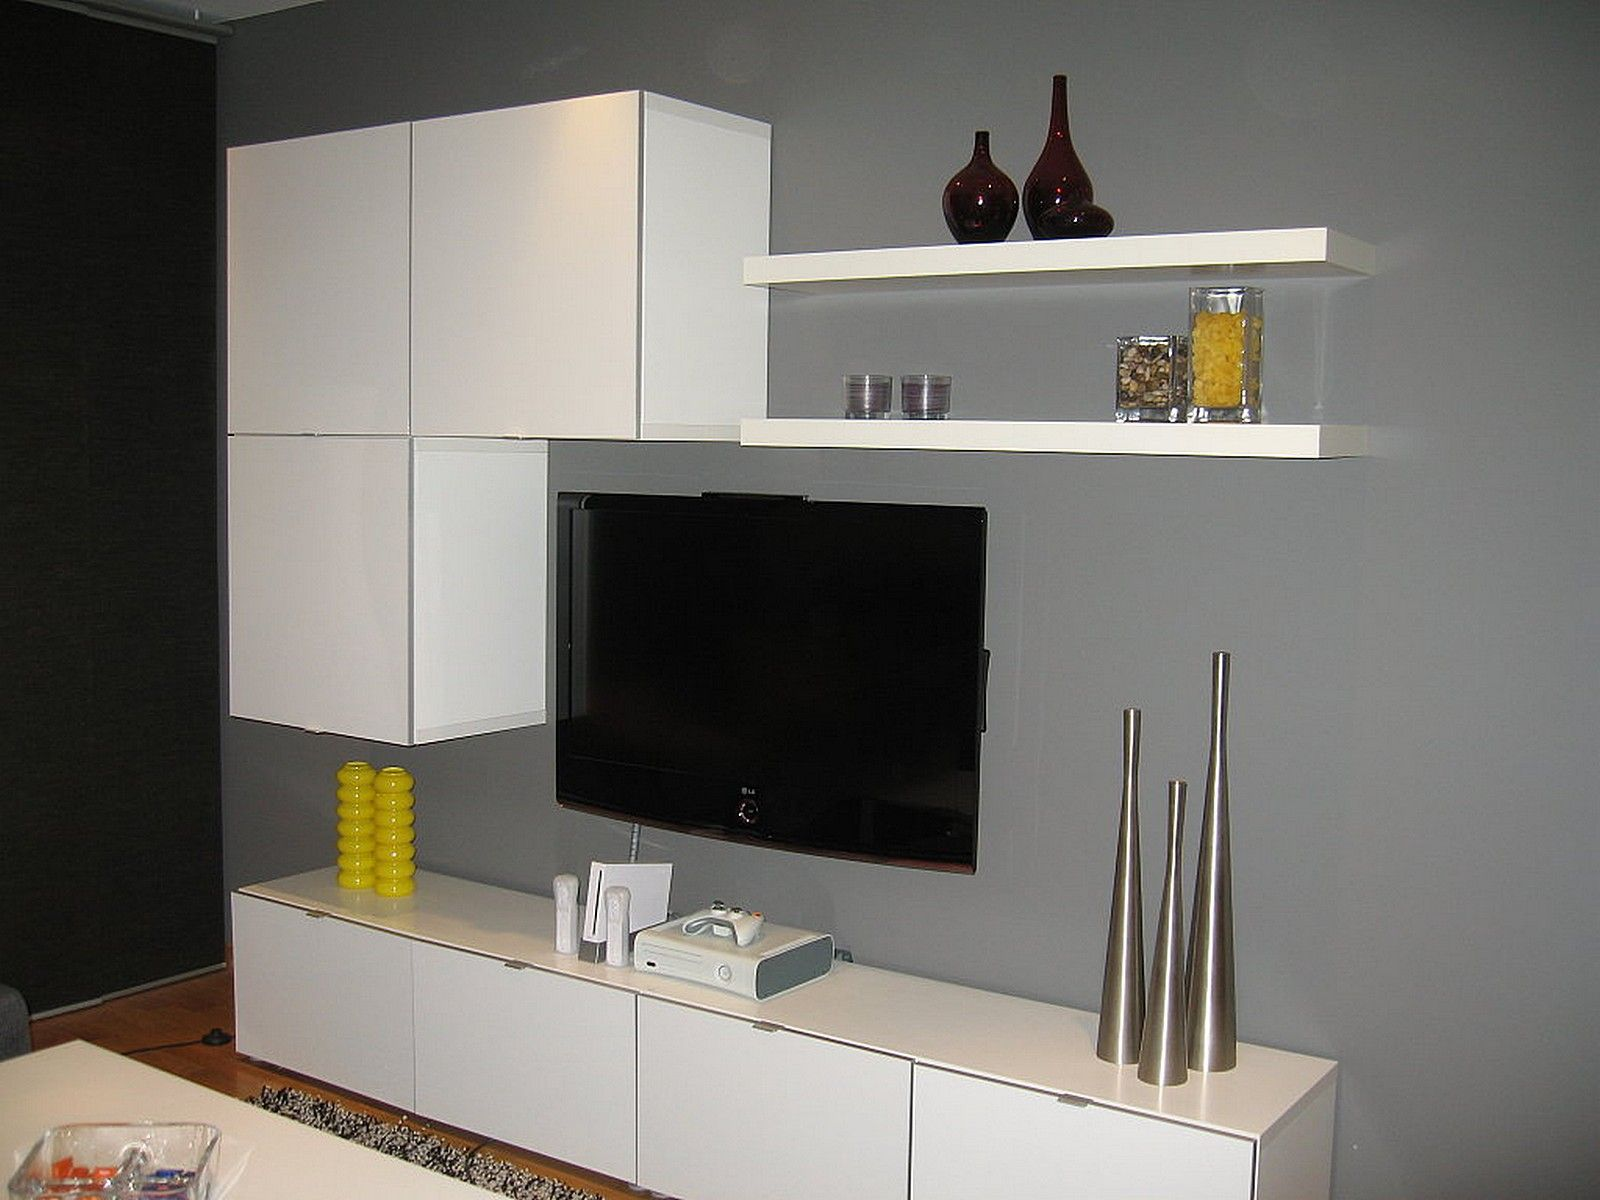 Besta Ikea Burs Tv Unit With Drawer Home Theatre Minimalist Desk - Modern banc tv ikea besta cabinet combination